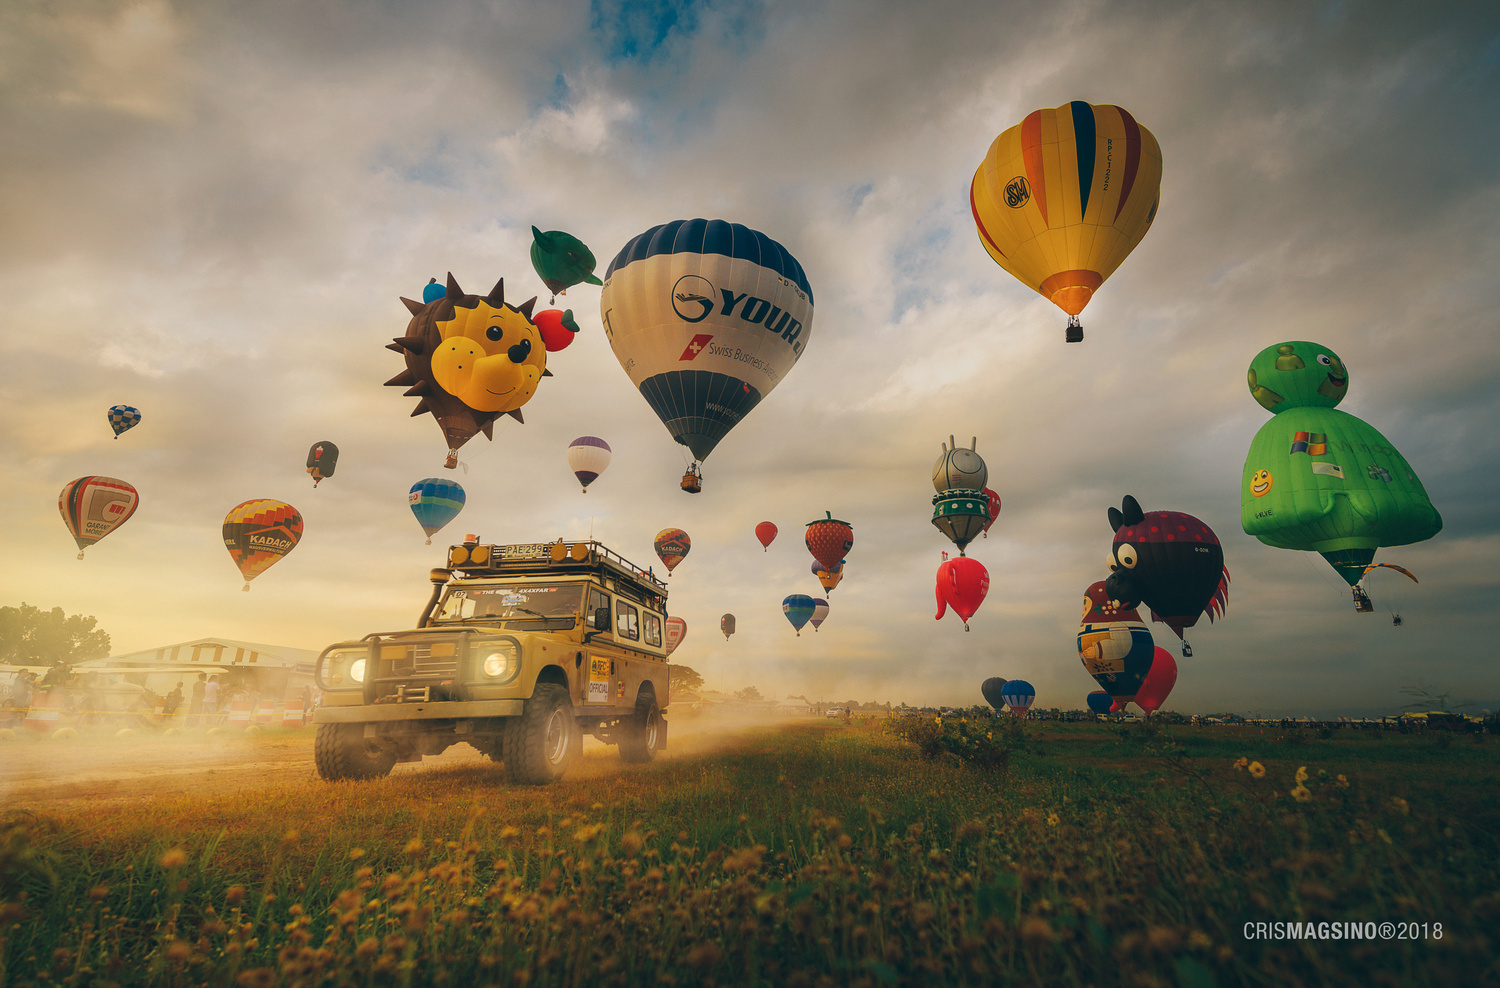 Balloon Chaser by Cris Magsino